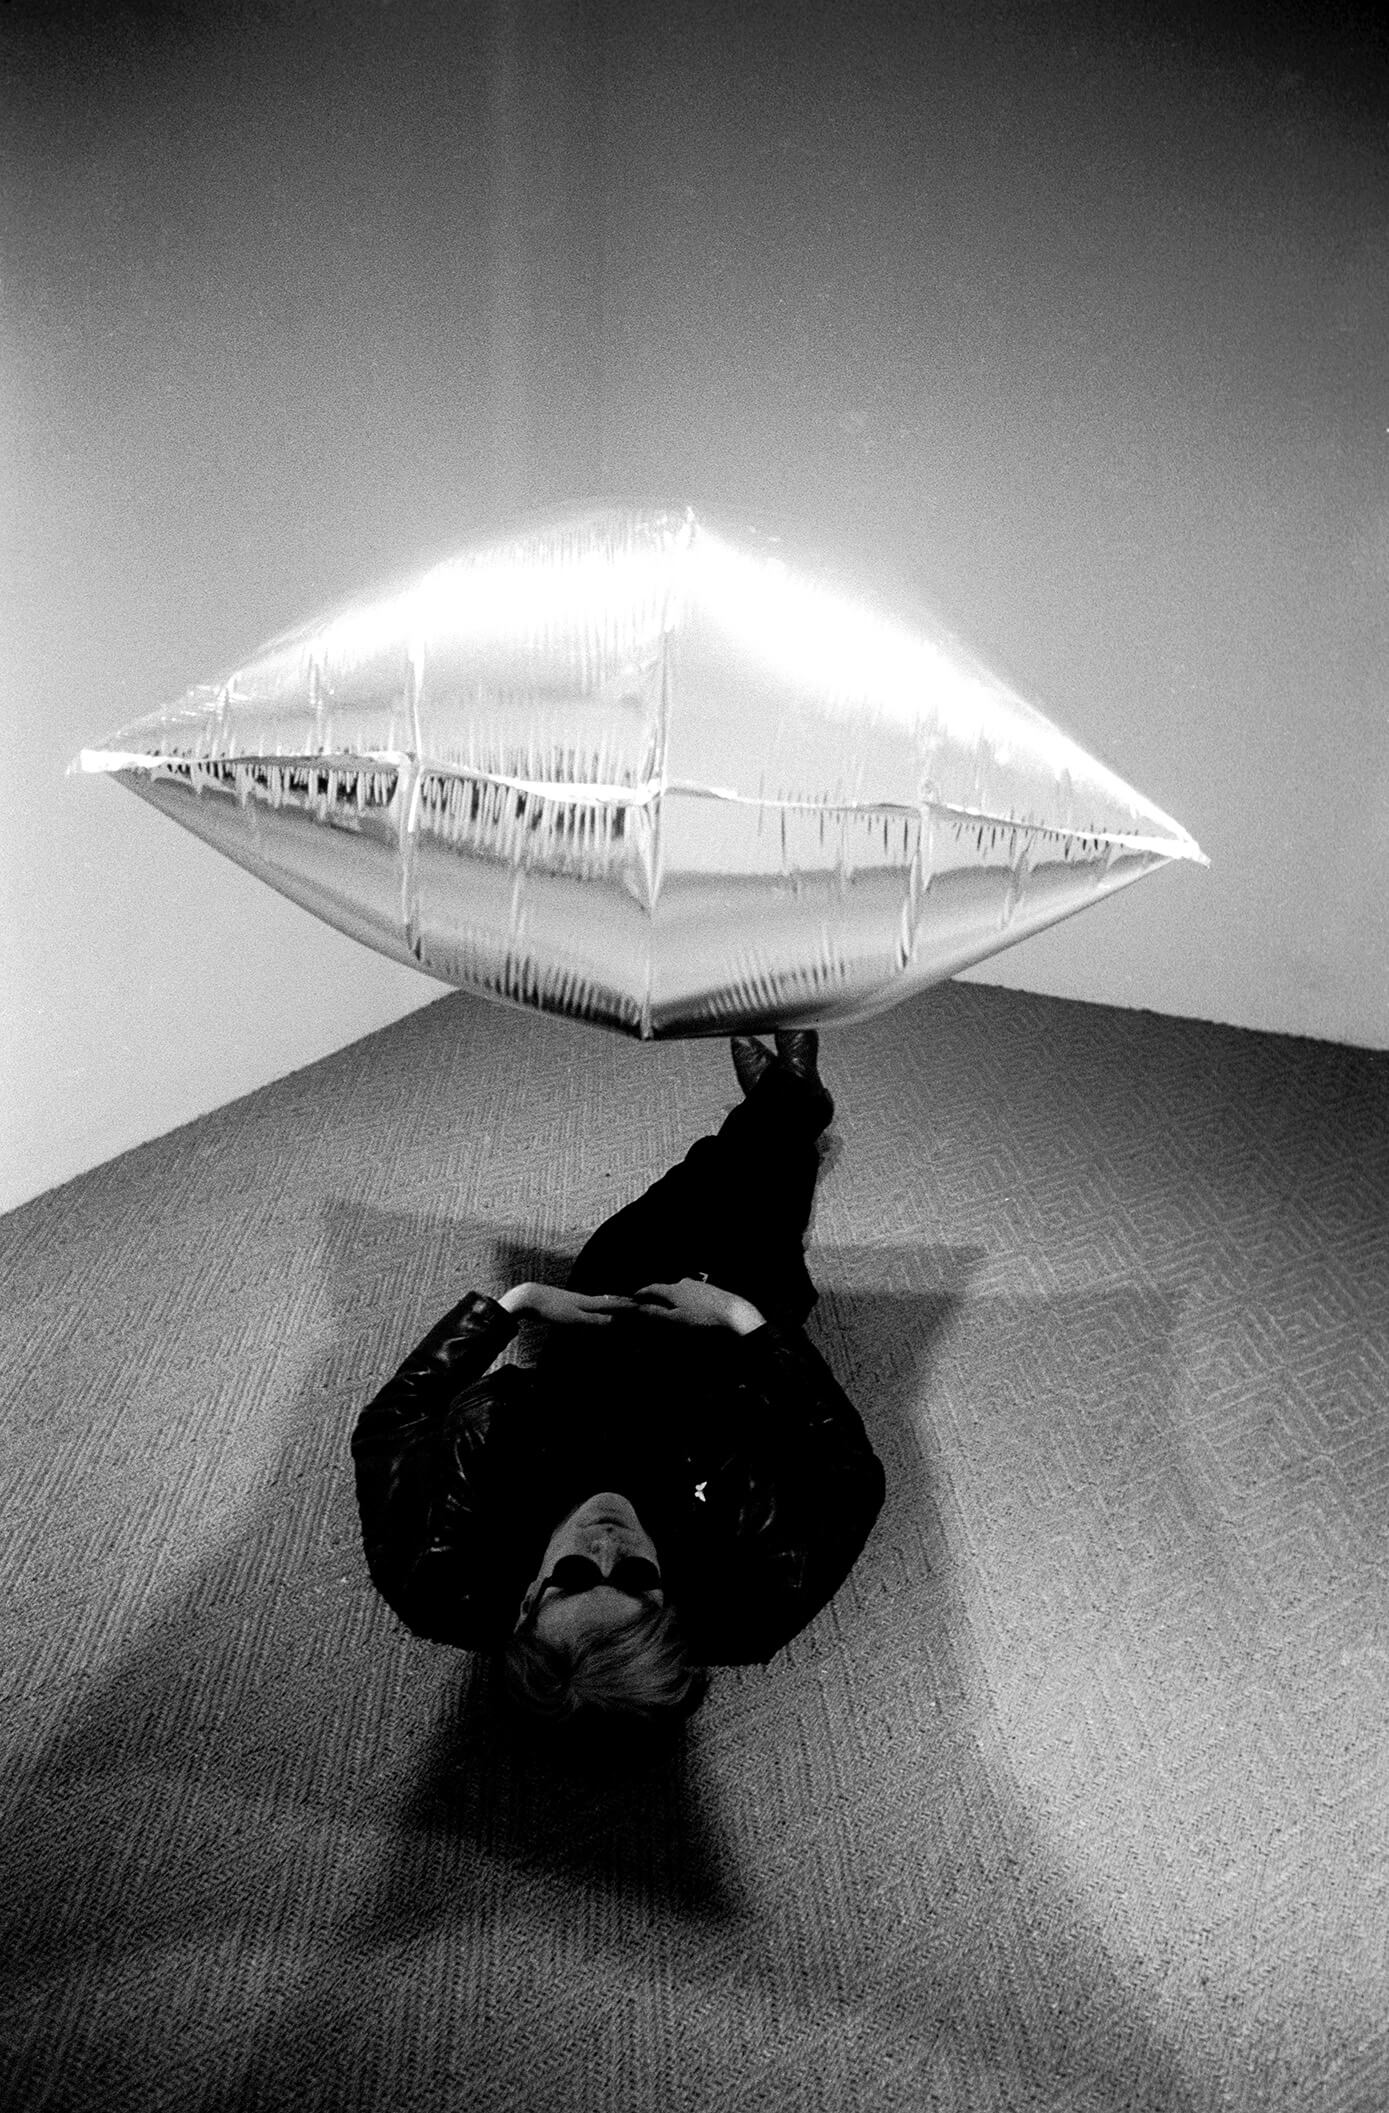 Andy Warhol (1928-1987), Sous Silver Cloud, Ferus Gallery, Los Angeles, 1965. © Steve Schapiro/Corbis. © The Andy Warhol Foundation for the Visual Arts, Inc. / ADAGP, Paris 2015.